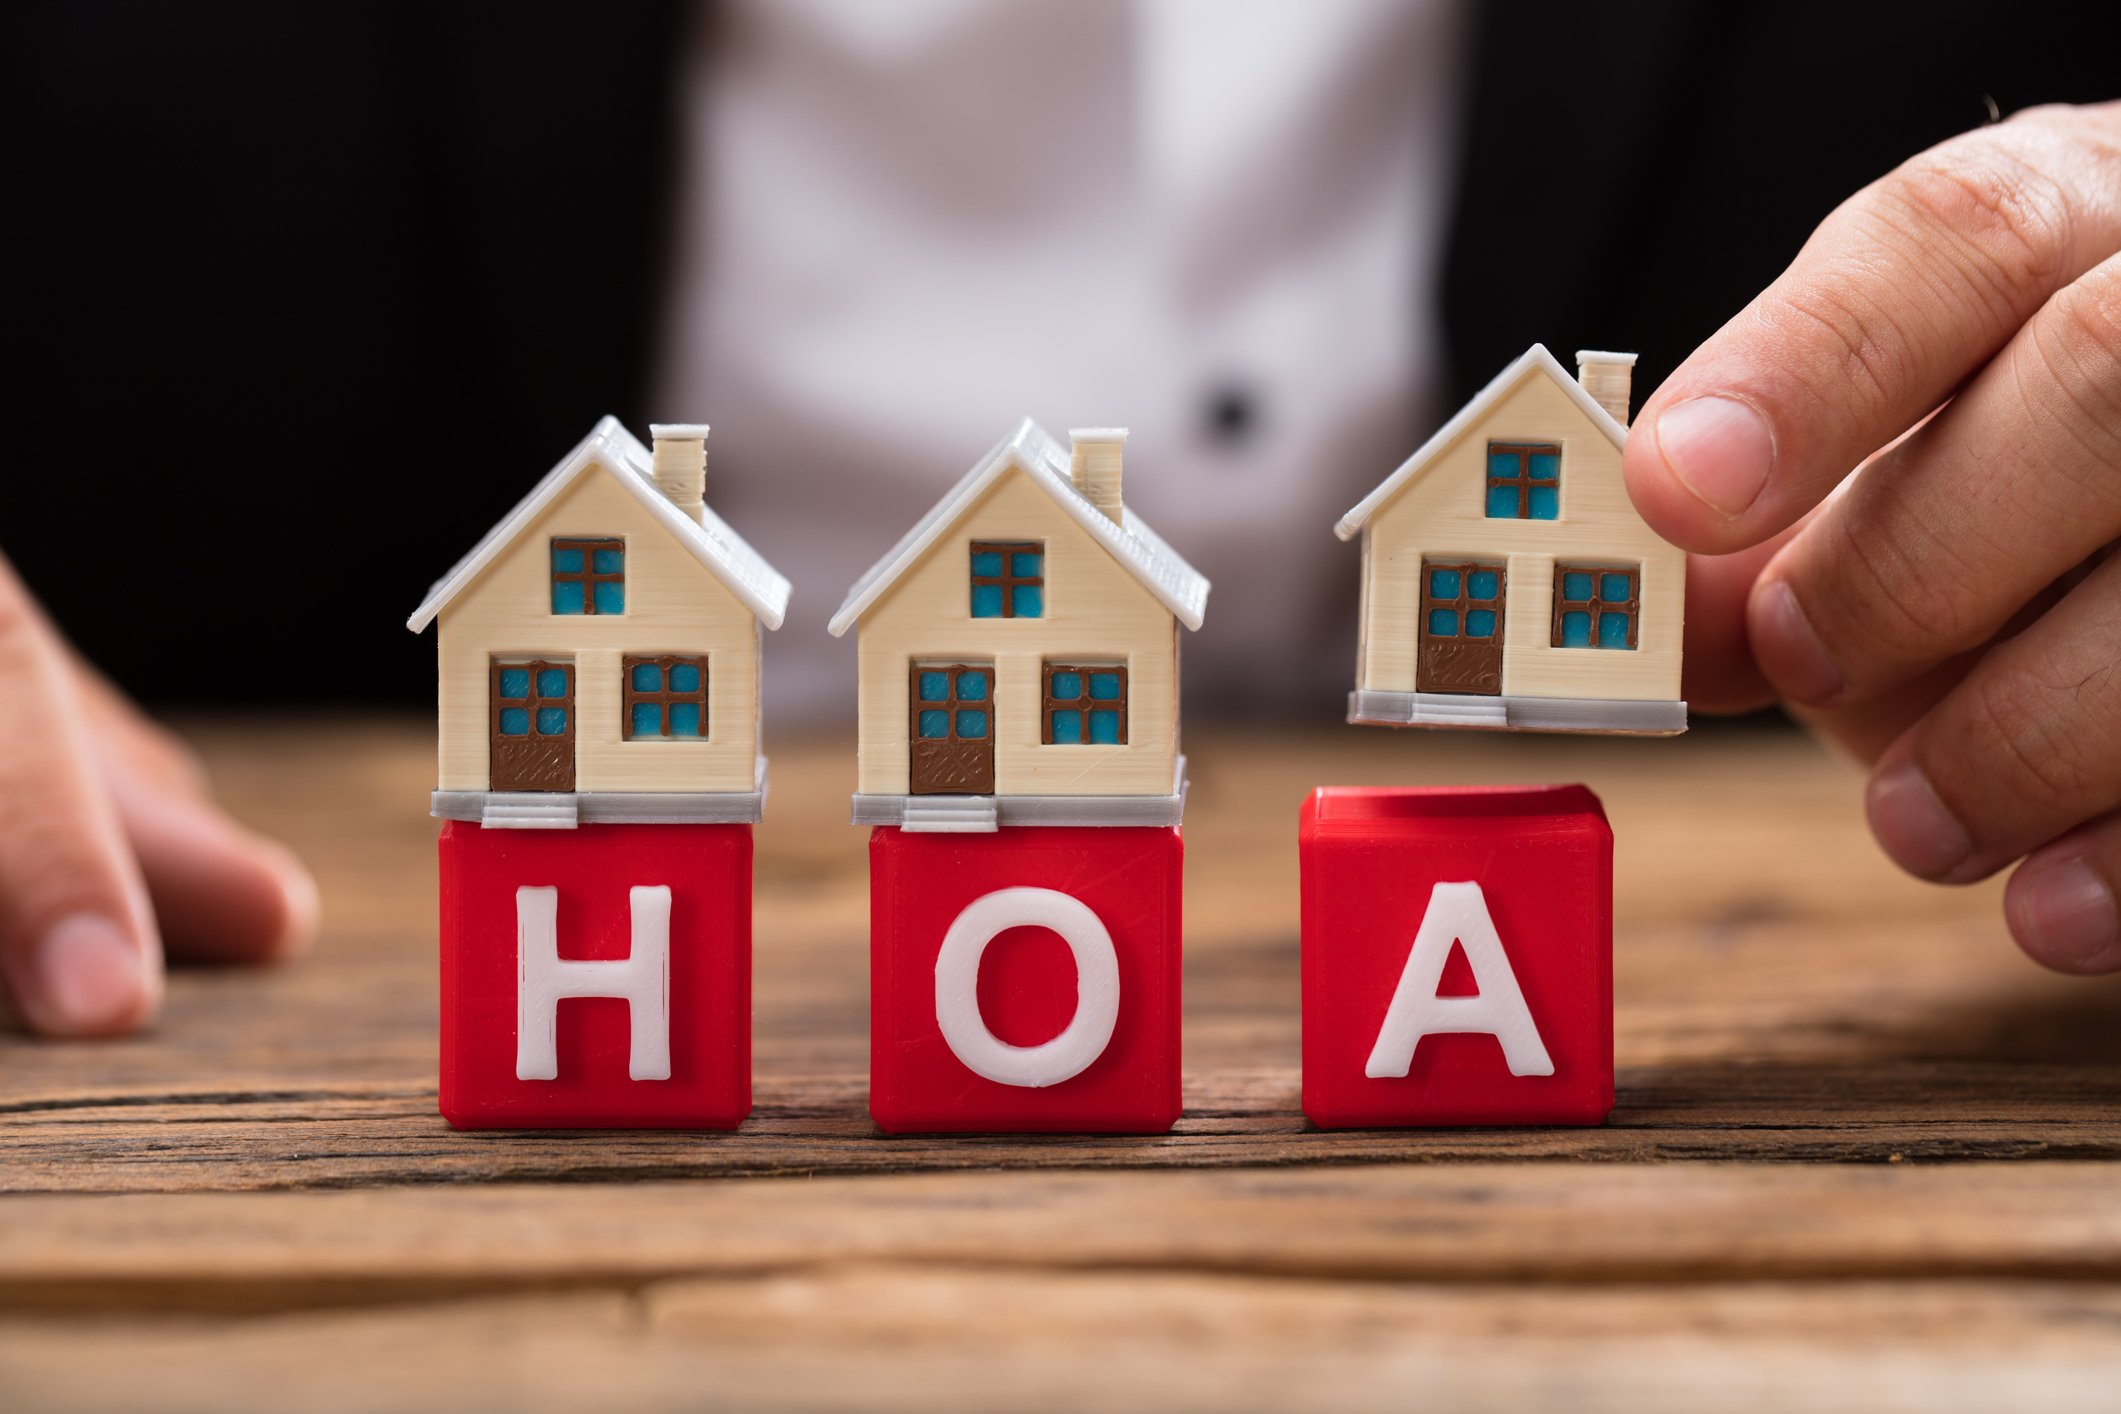 What are HOA's?